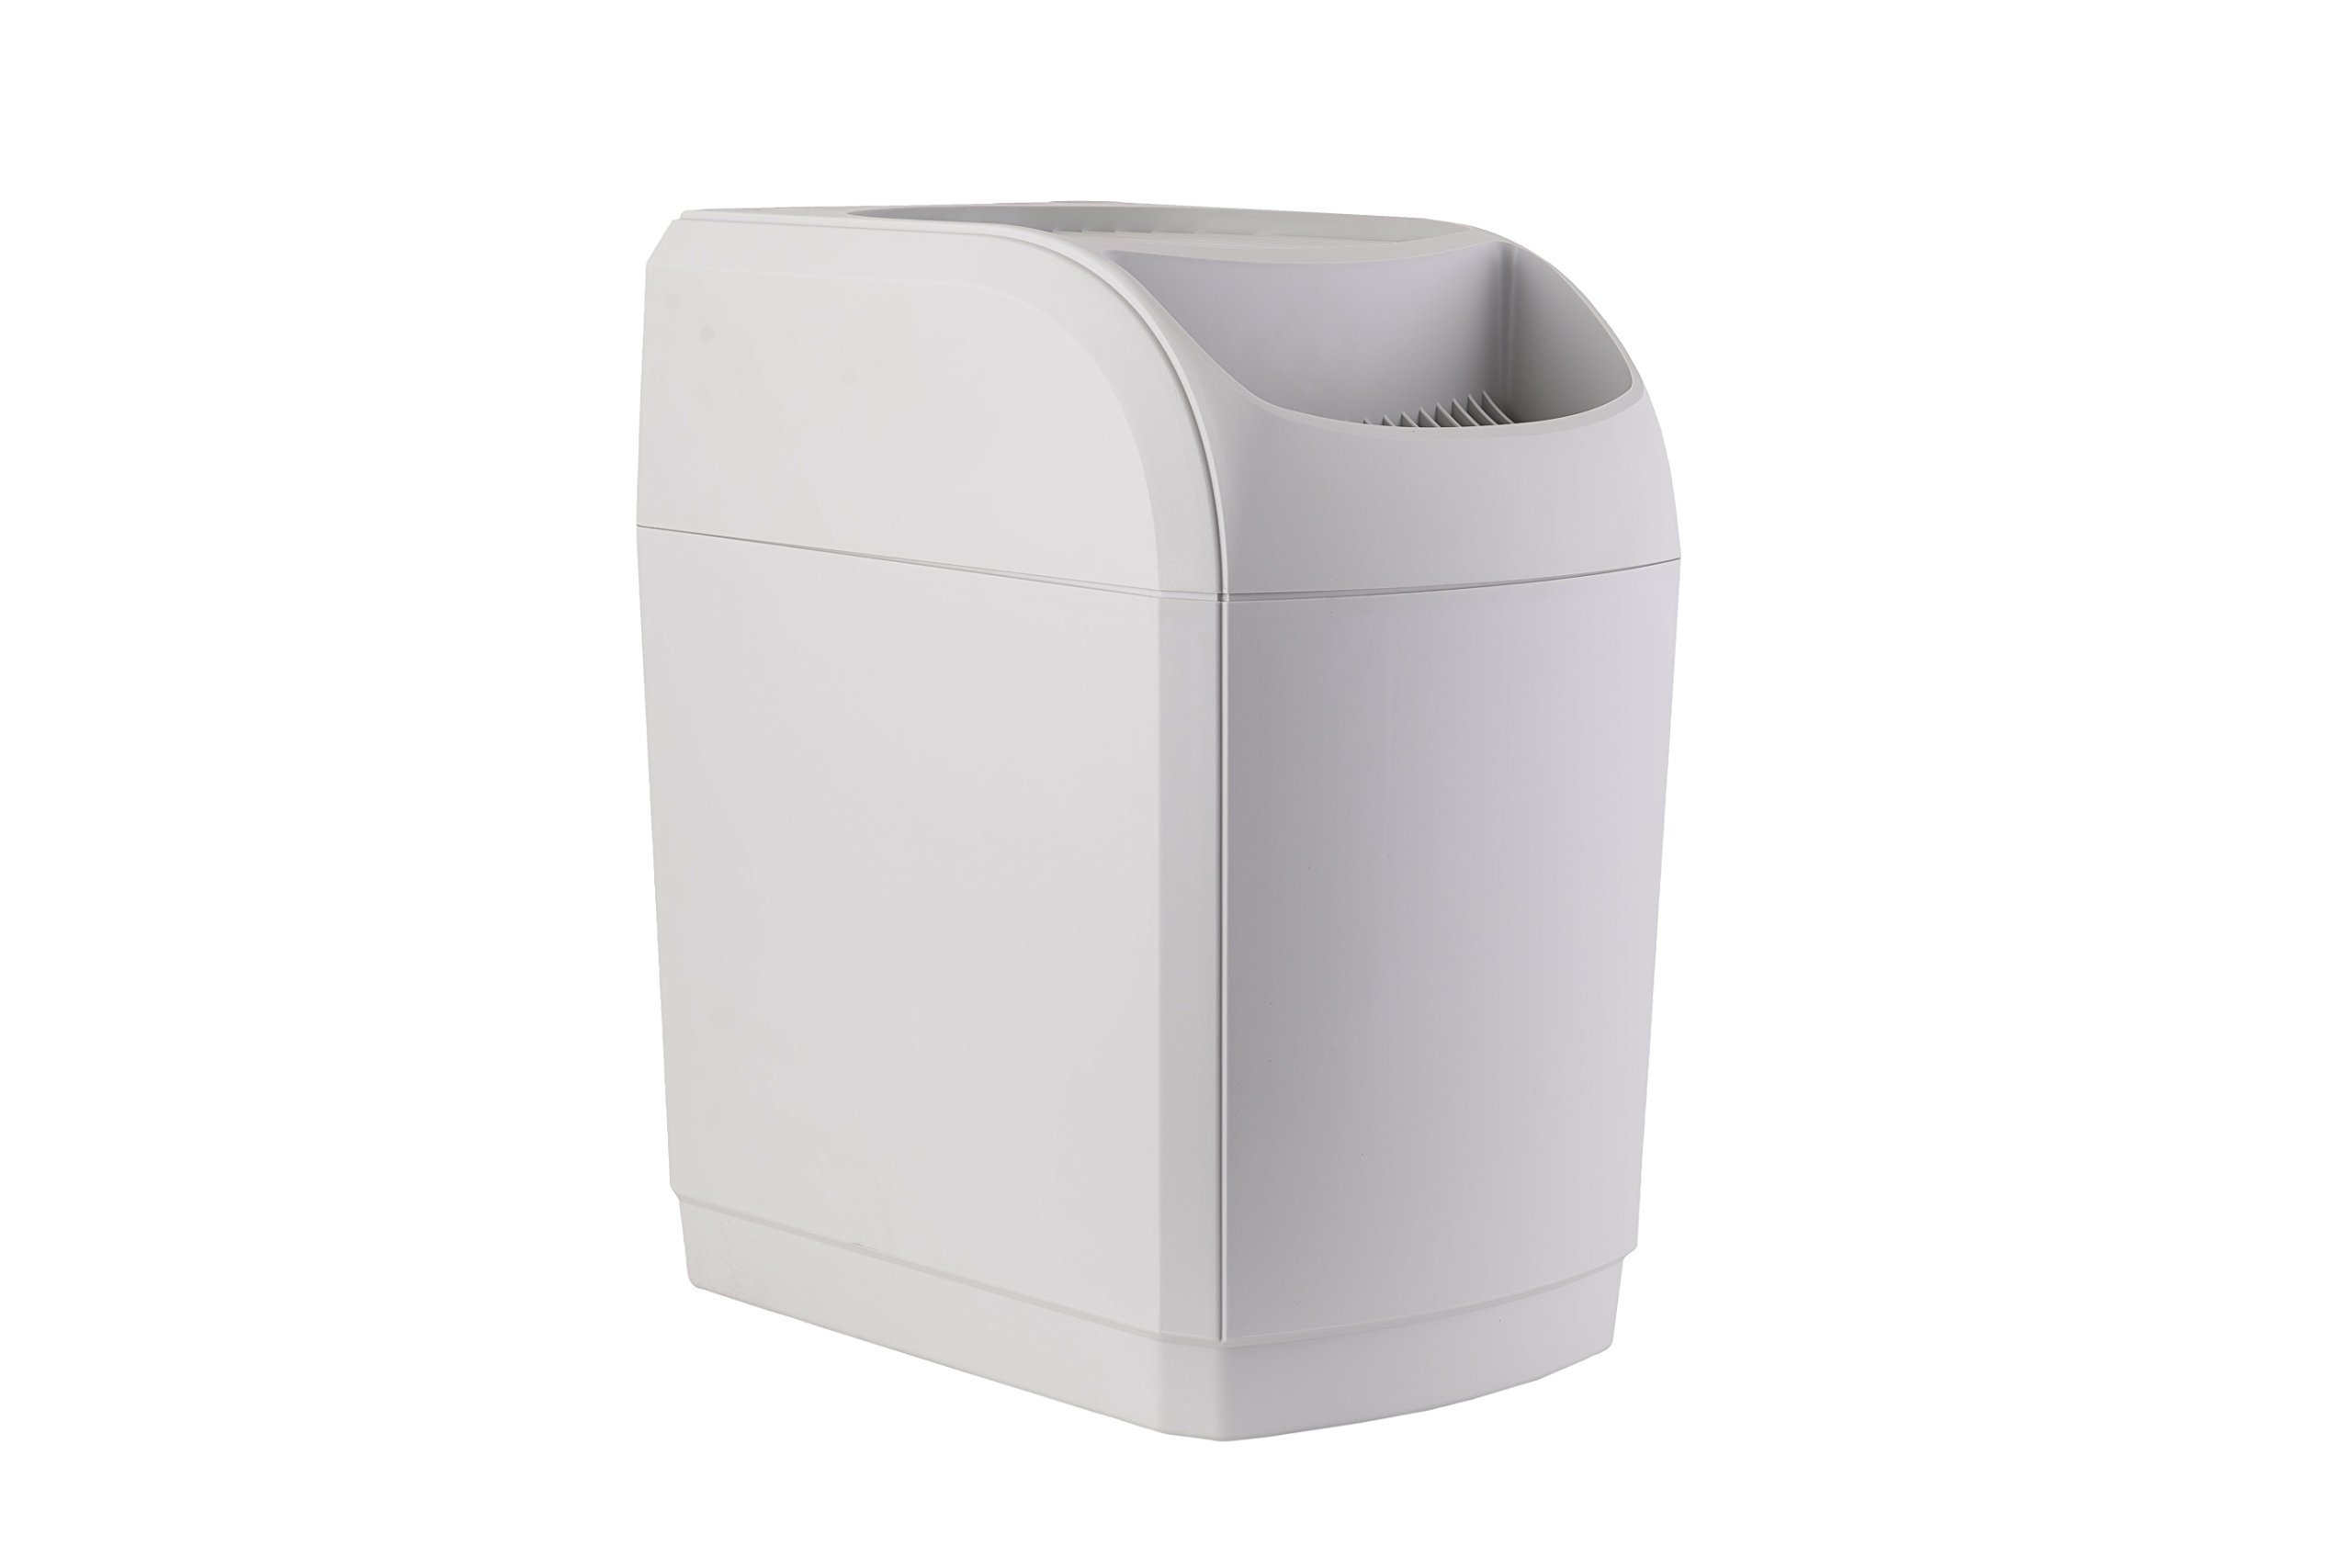 AIRCARE 826000 Space-Saver, White SpaceSaver Evaporative Humidifier for 2300 sq. ft, by AIRCARE